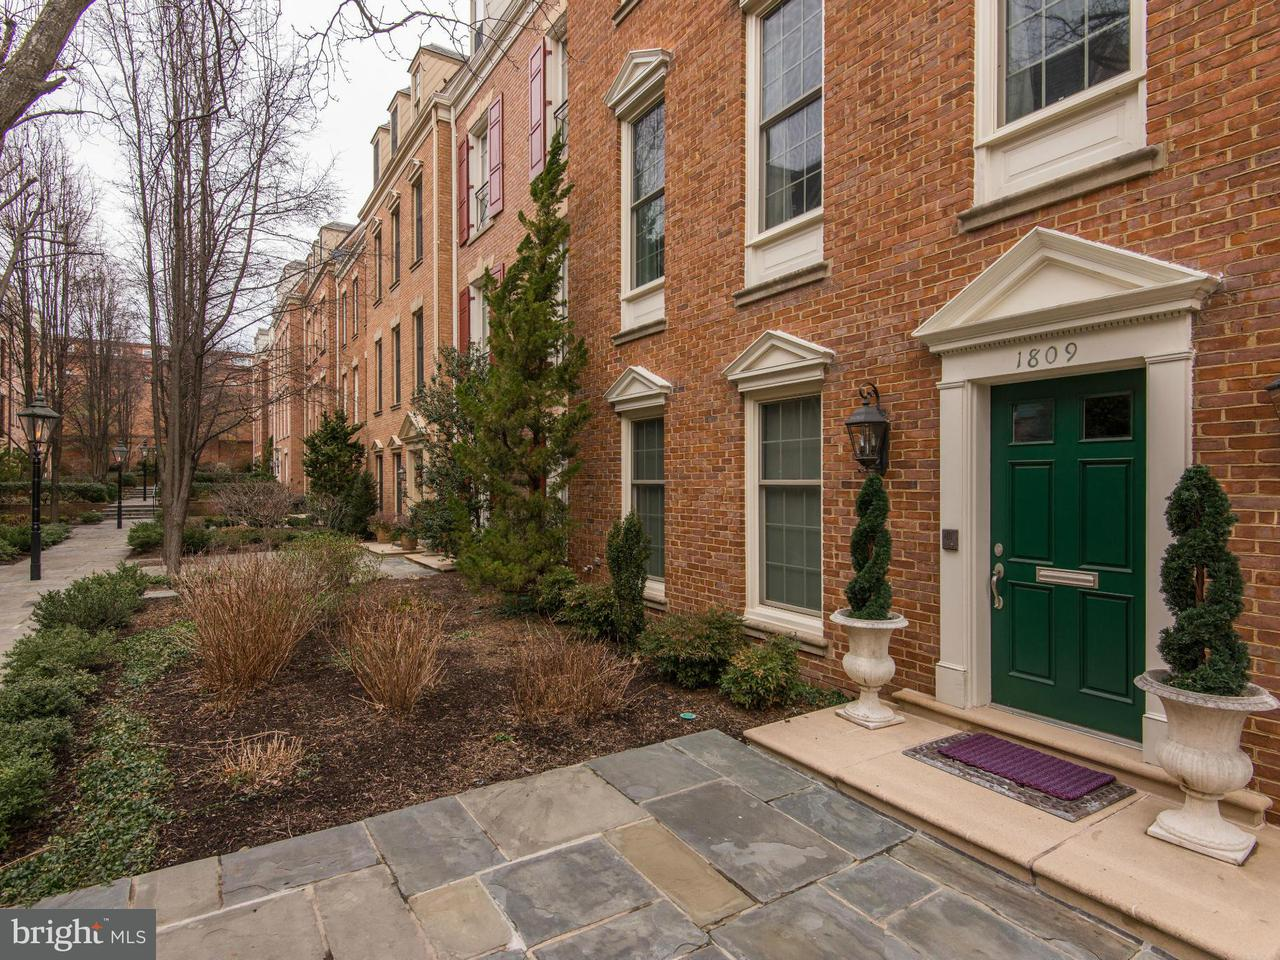 Townhouse for Sale at 1809 KALORAMA SQUARE NW 1809 KALORAMA SQUARE NW Washington, District Of Columbia 20009 United States